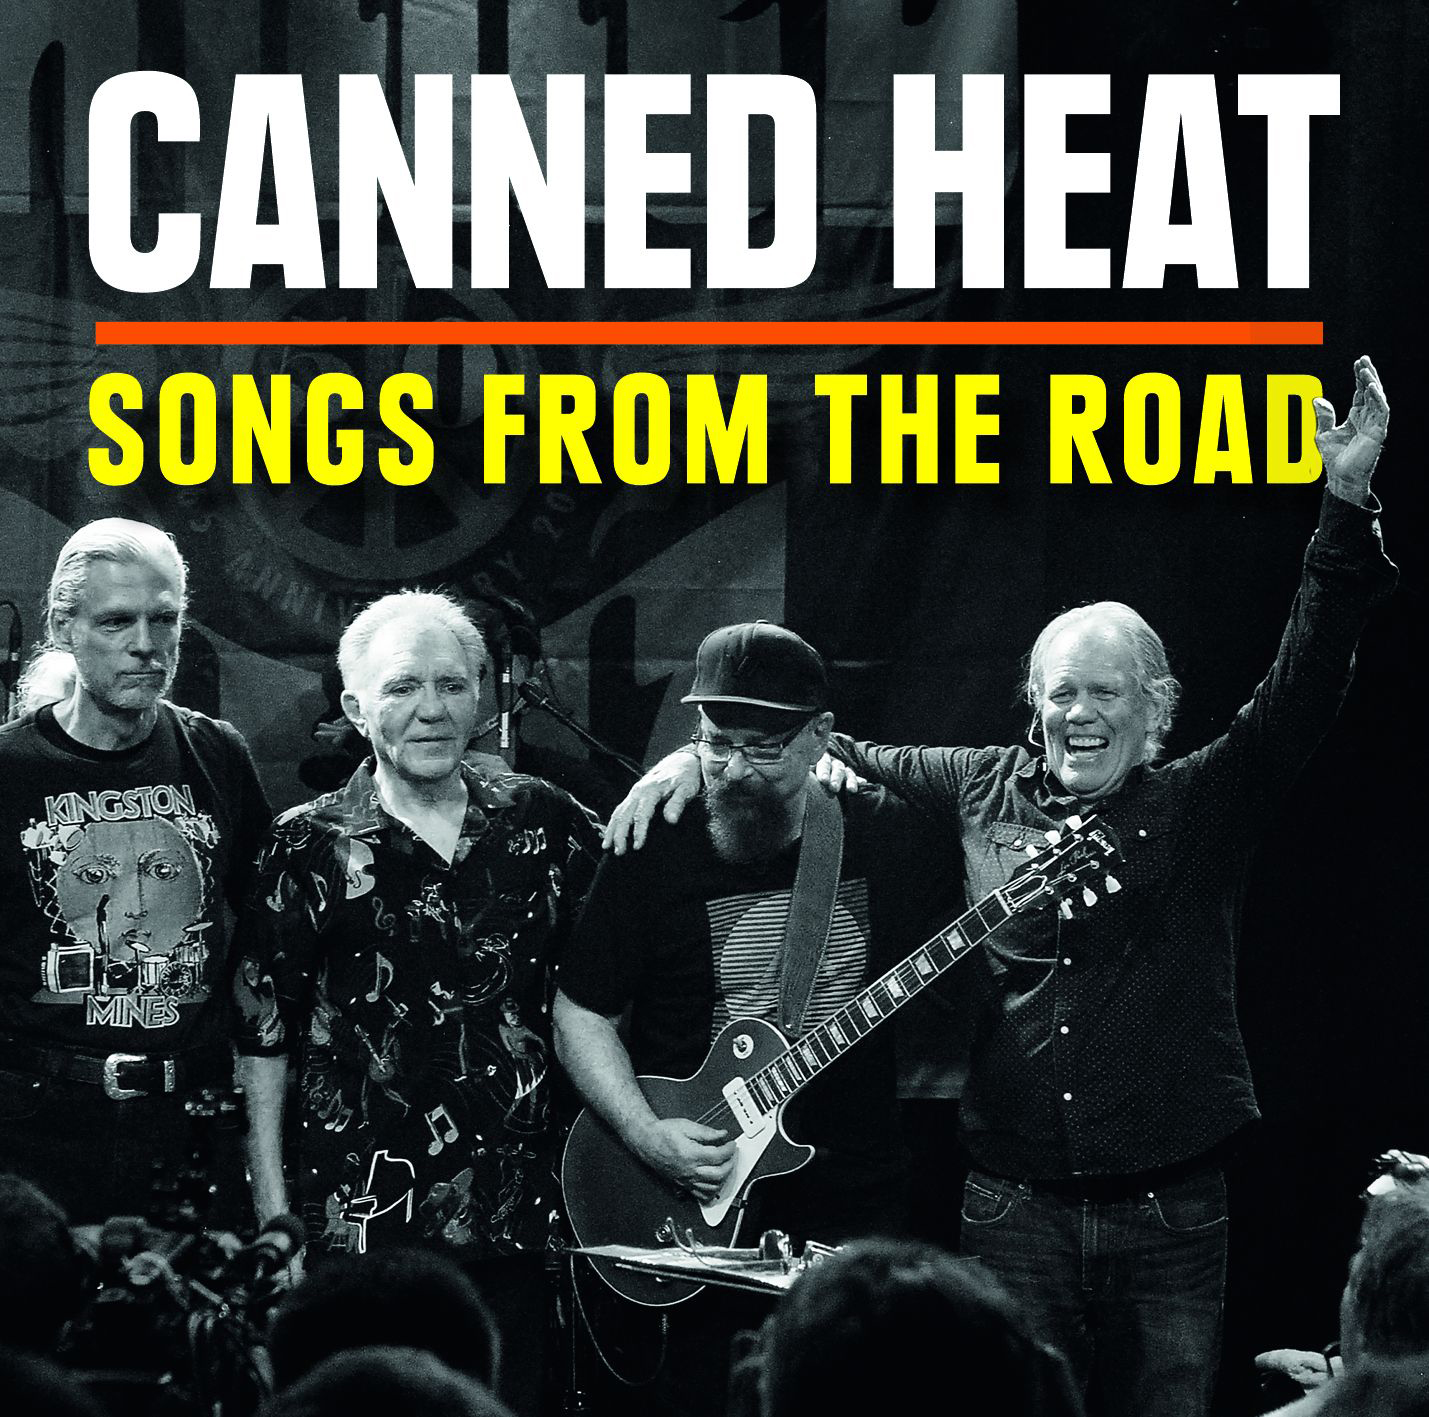 Canned Heat: Songs From the Road